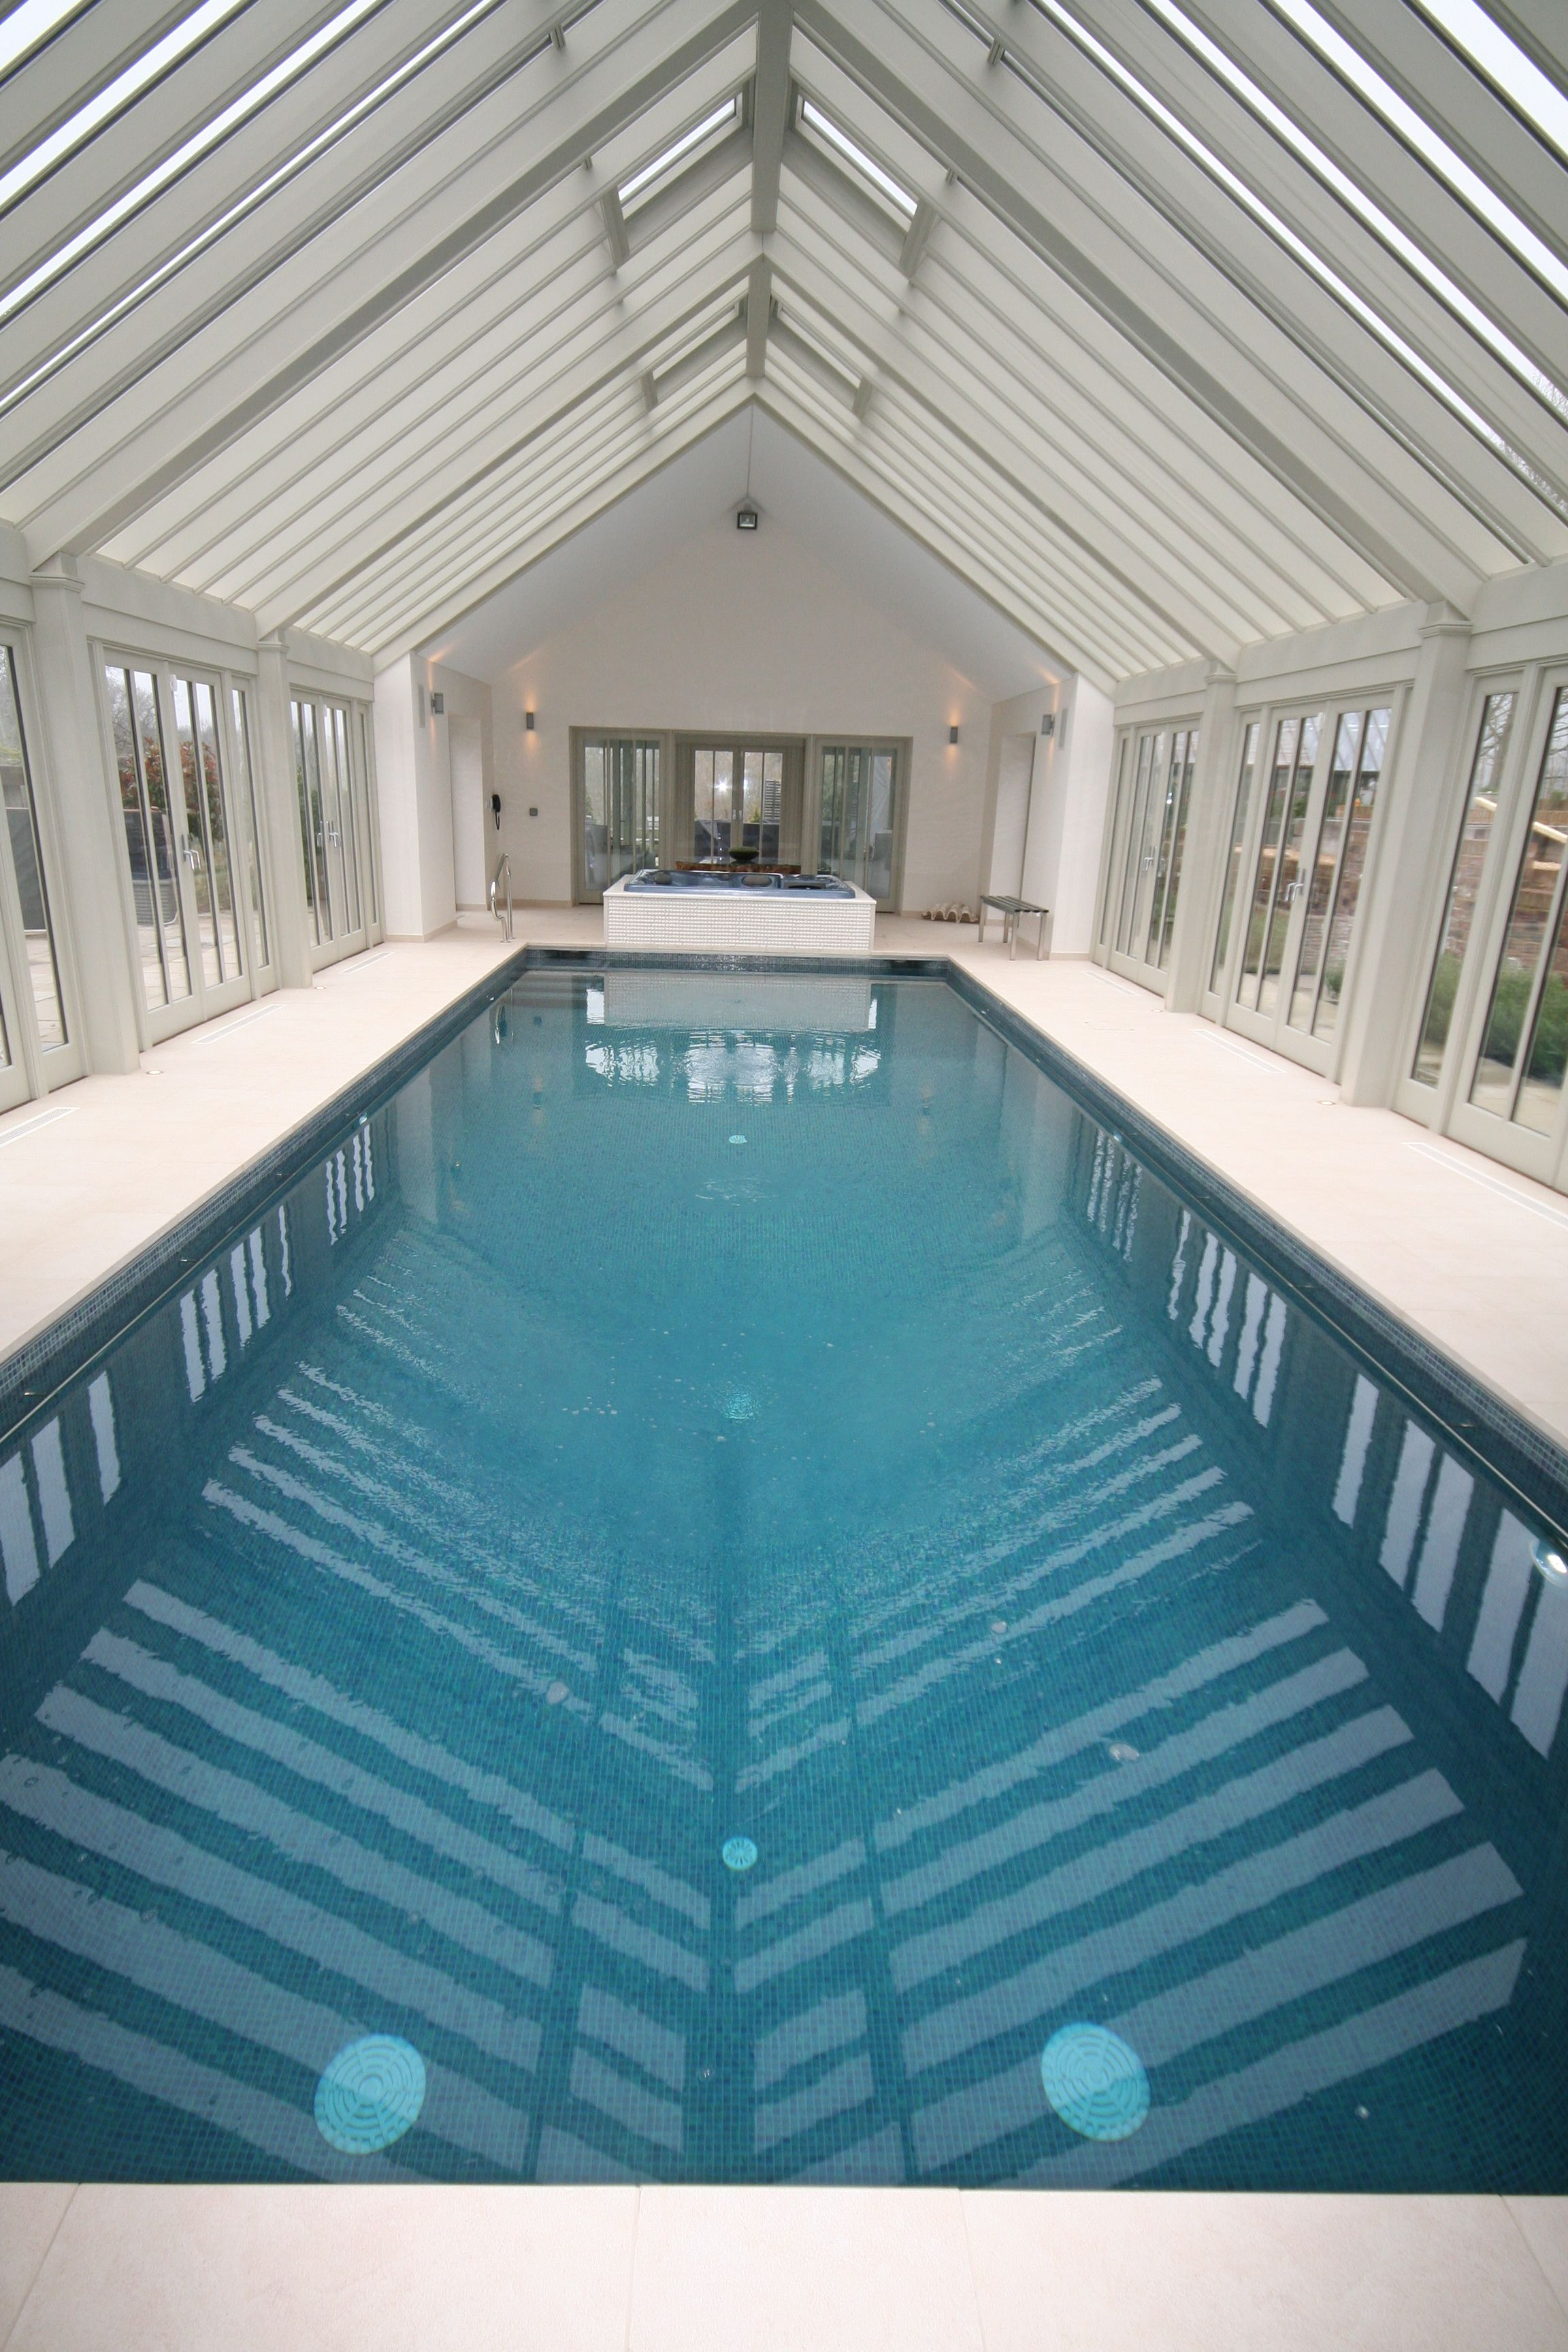 Glass House pool and spa Indoor Pools Pinterest House pools